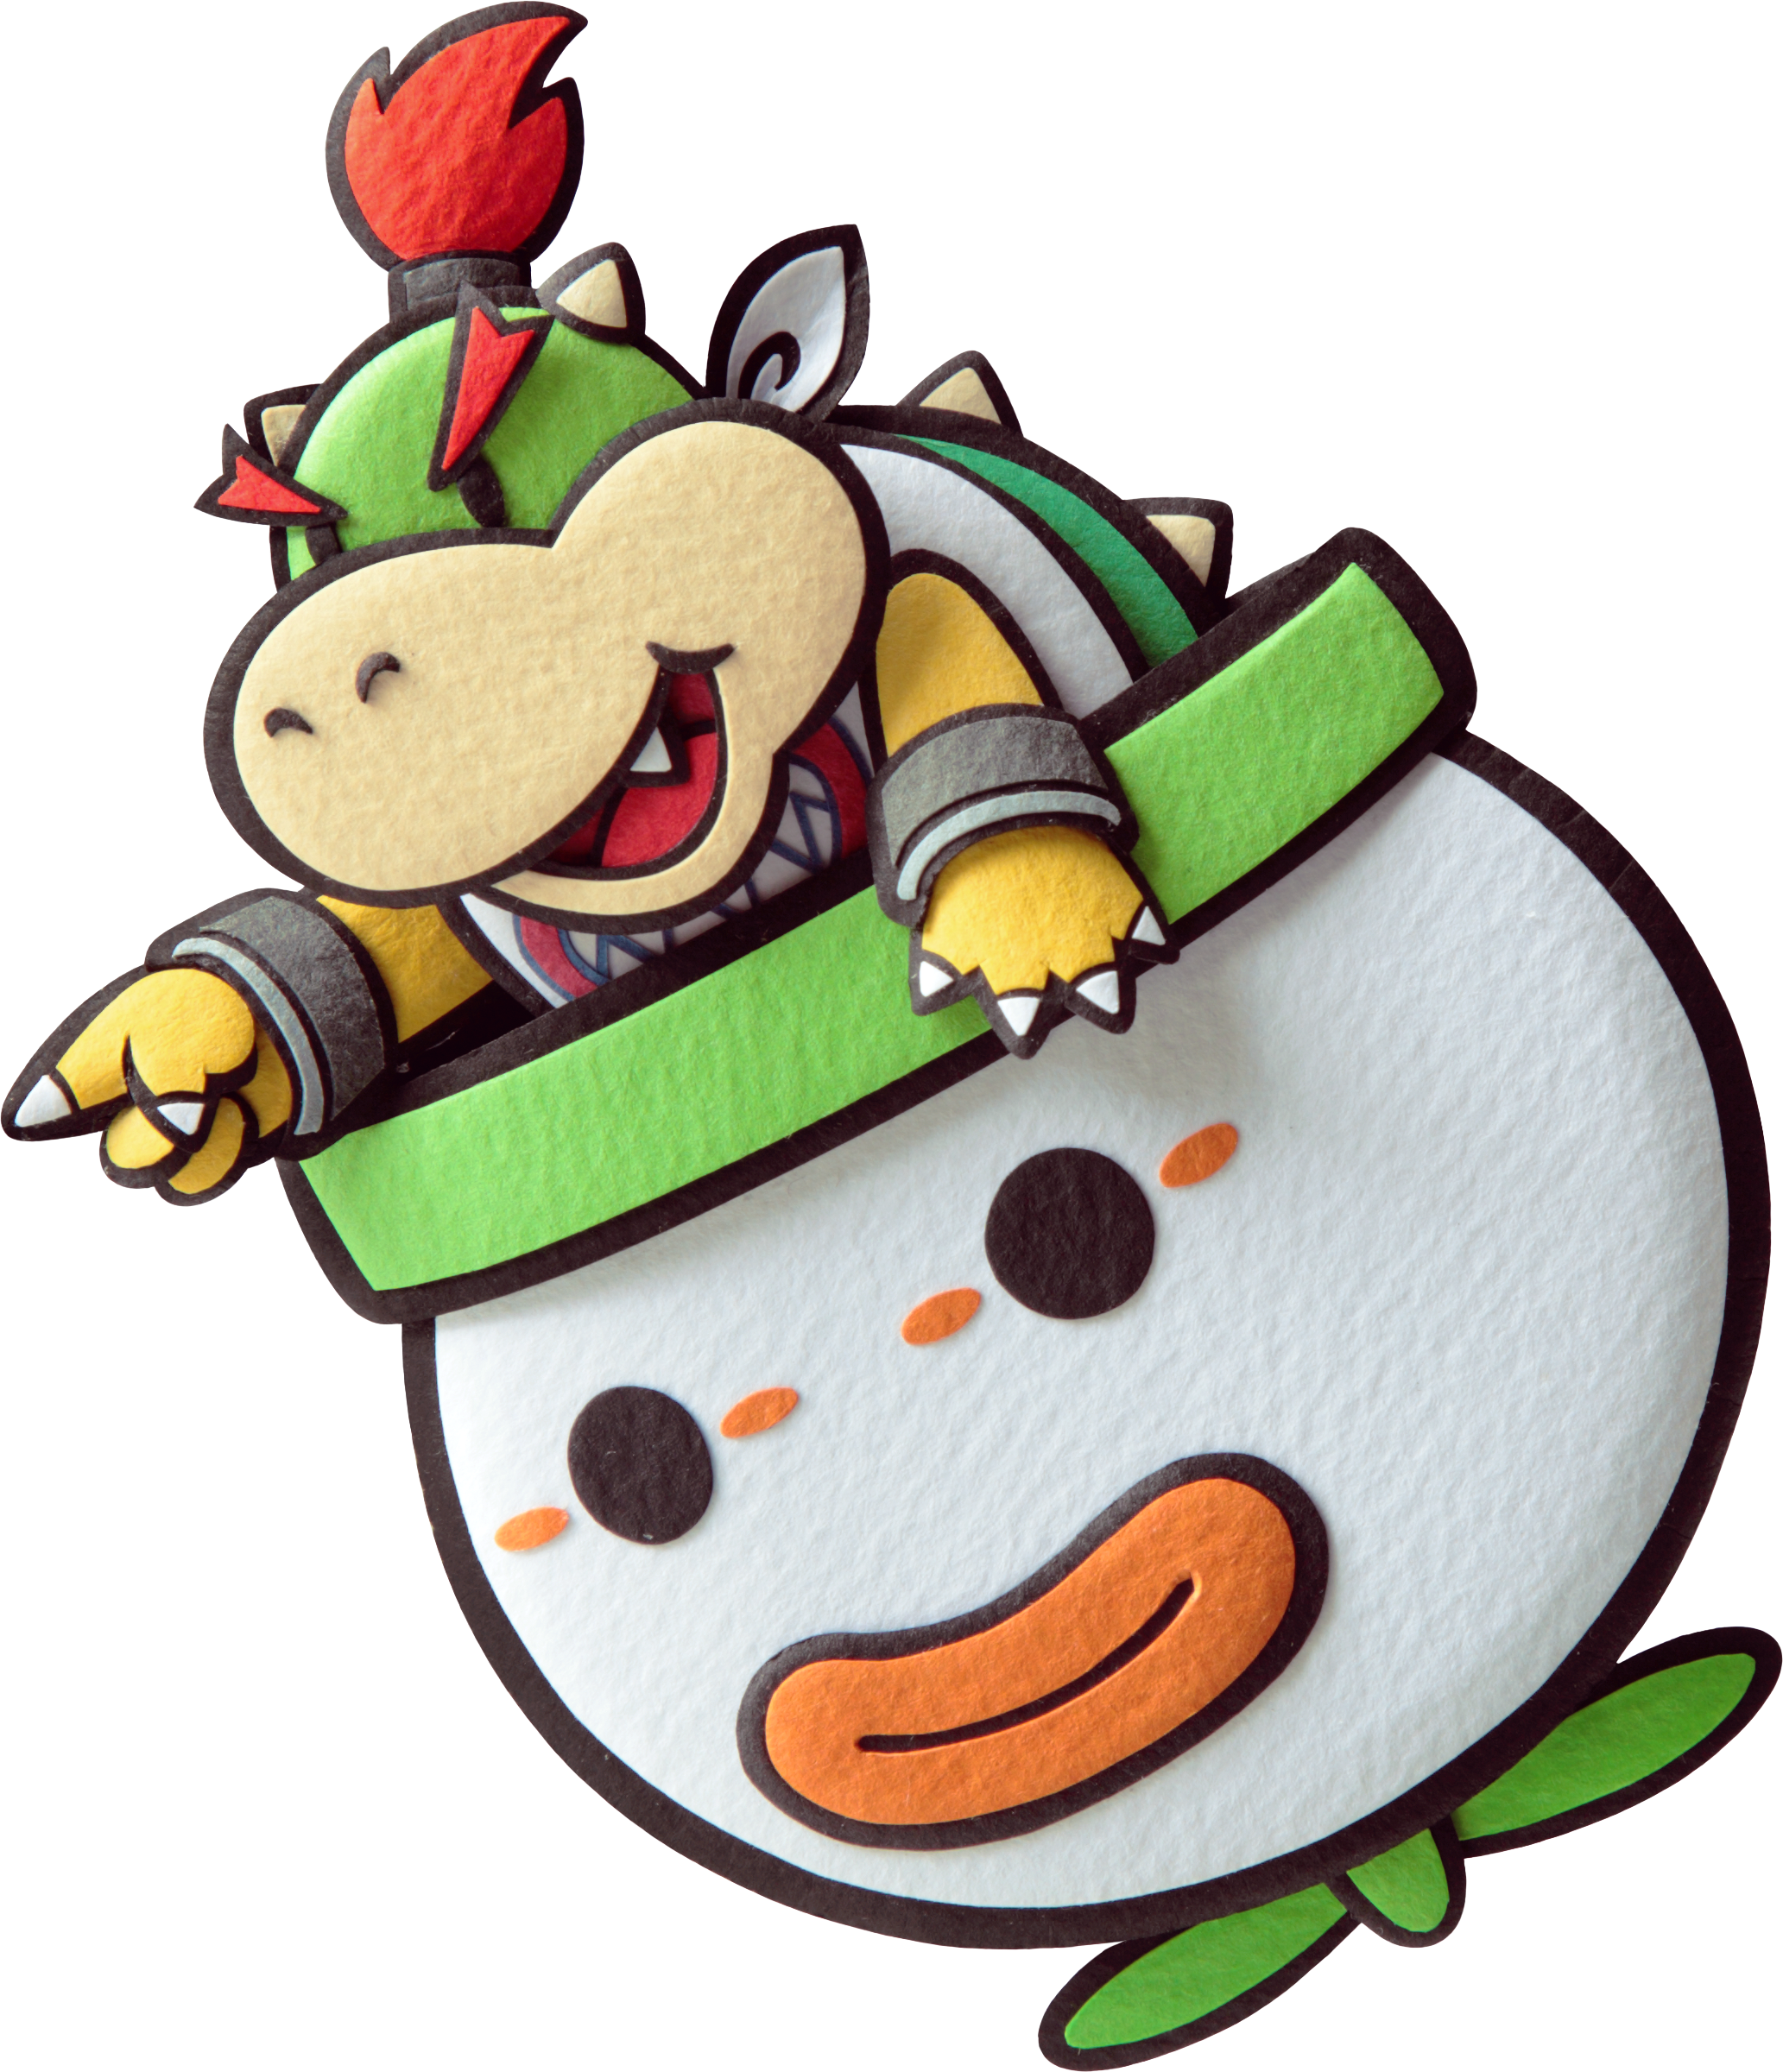 bowser jr paper mario sticker starpng